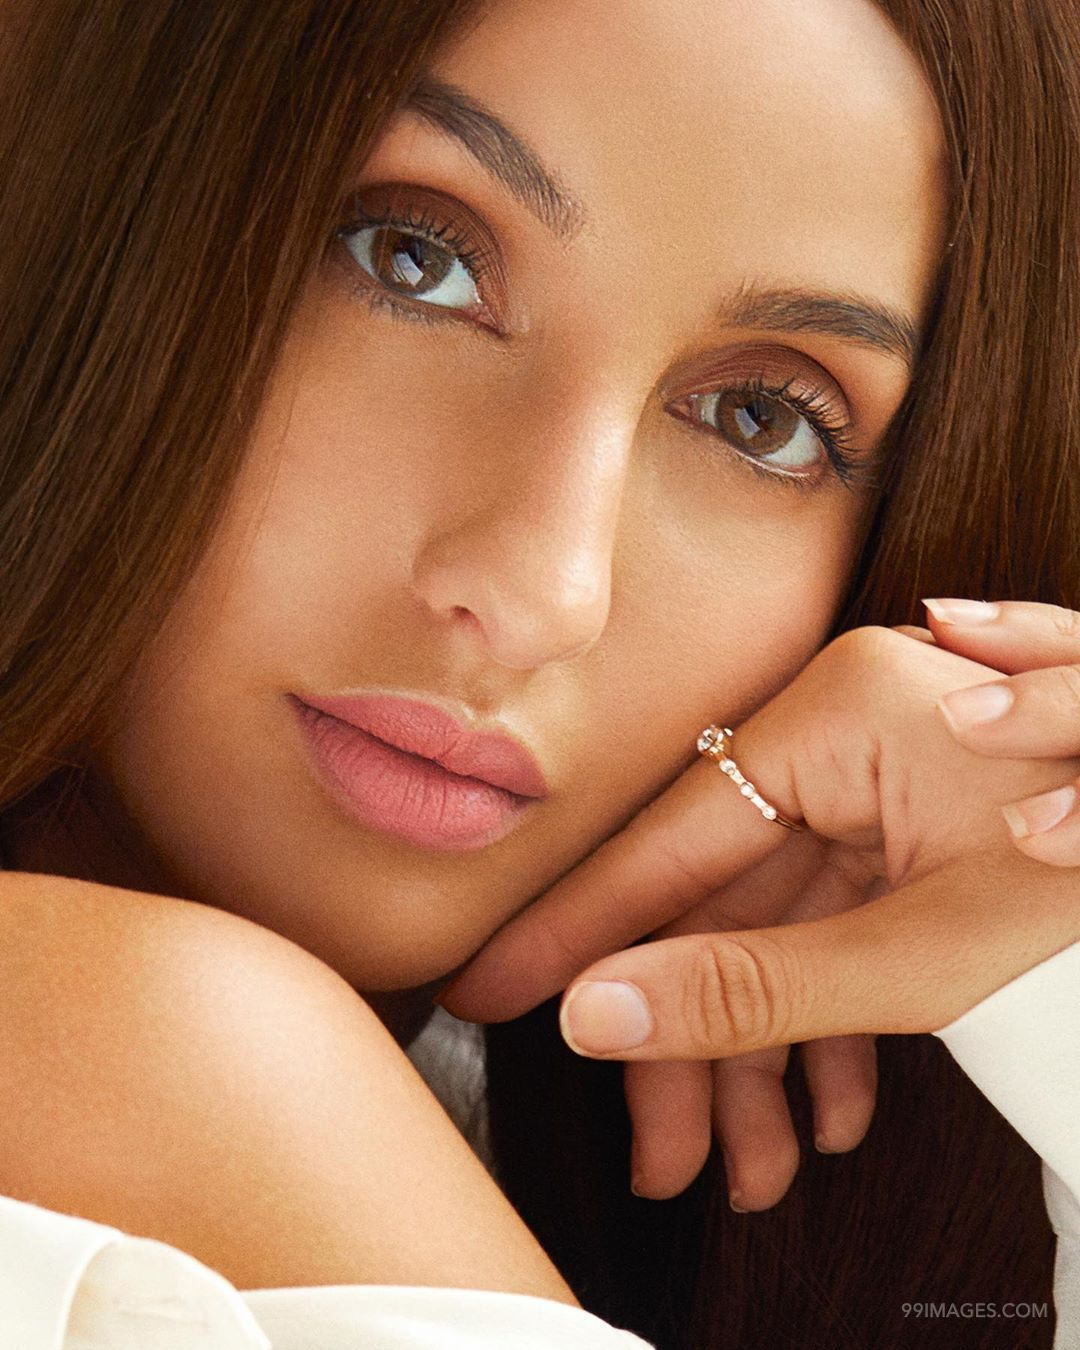 Nora Fatehi Latest Hot HD Photos & Mobile Wallpapers (1080p) (50361) - Nora Fatehi